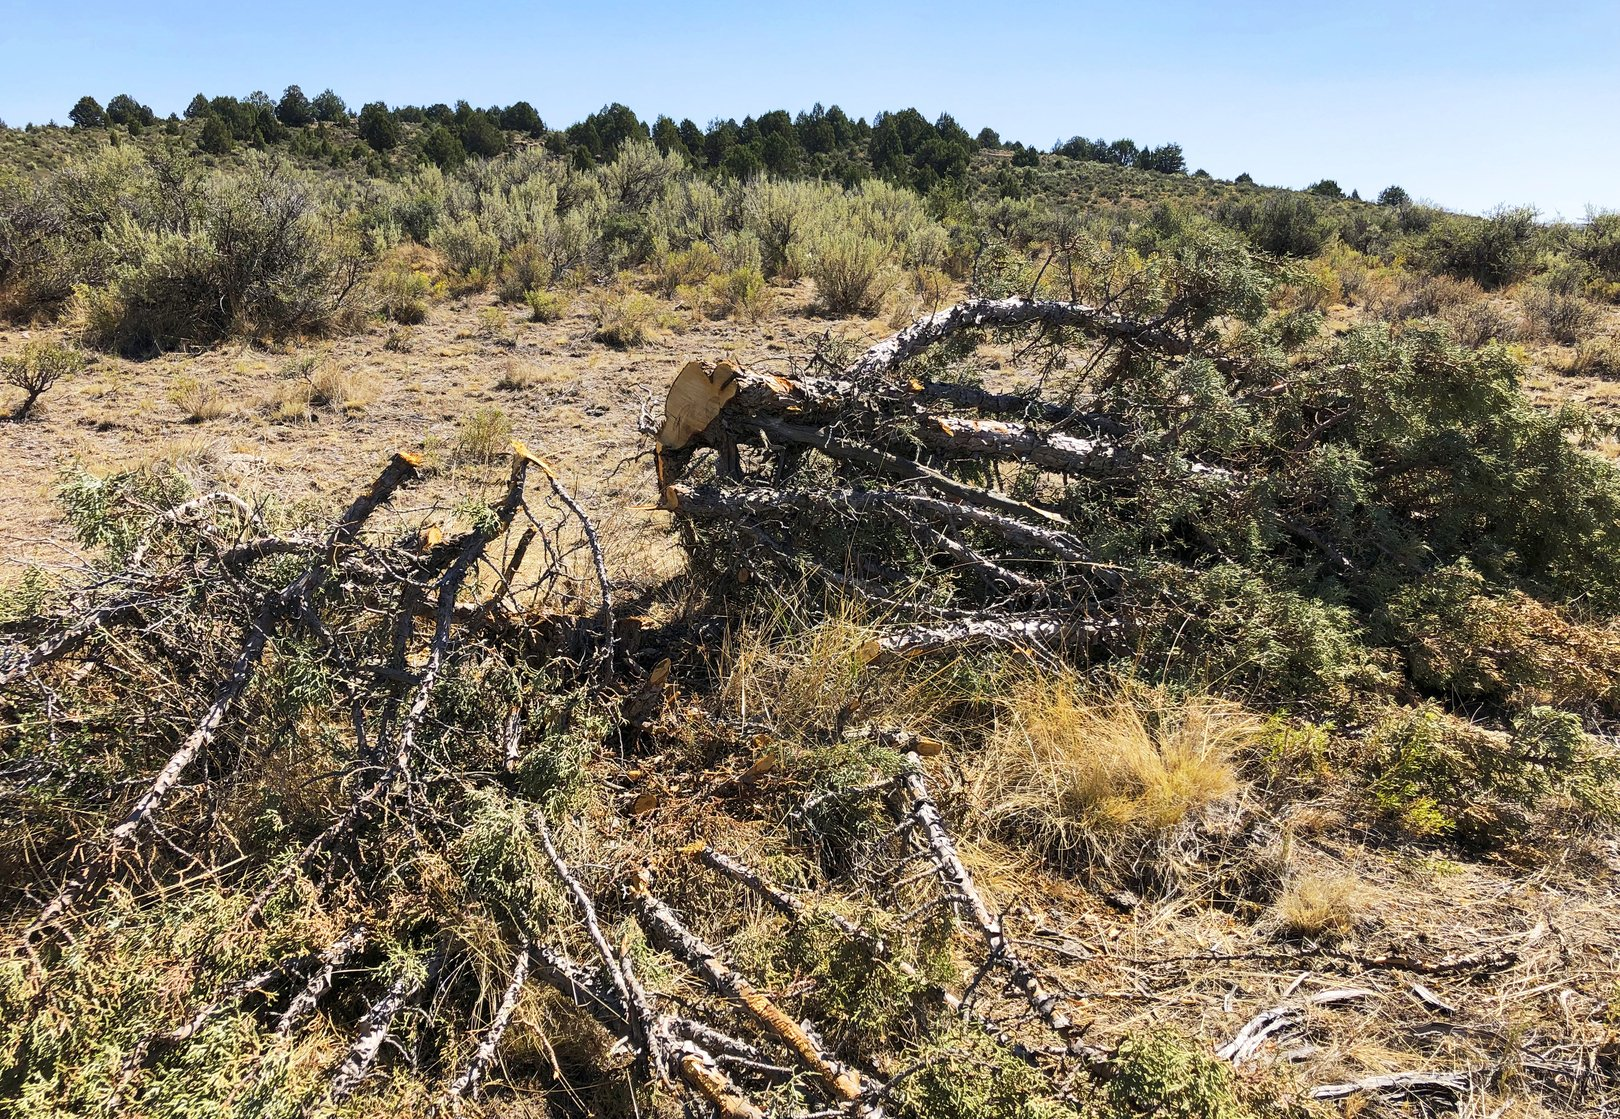 Massive tree-cutting project could aid imperiled sage grouse